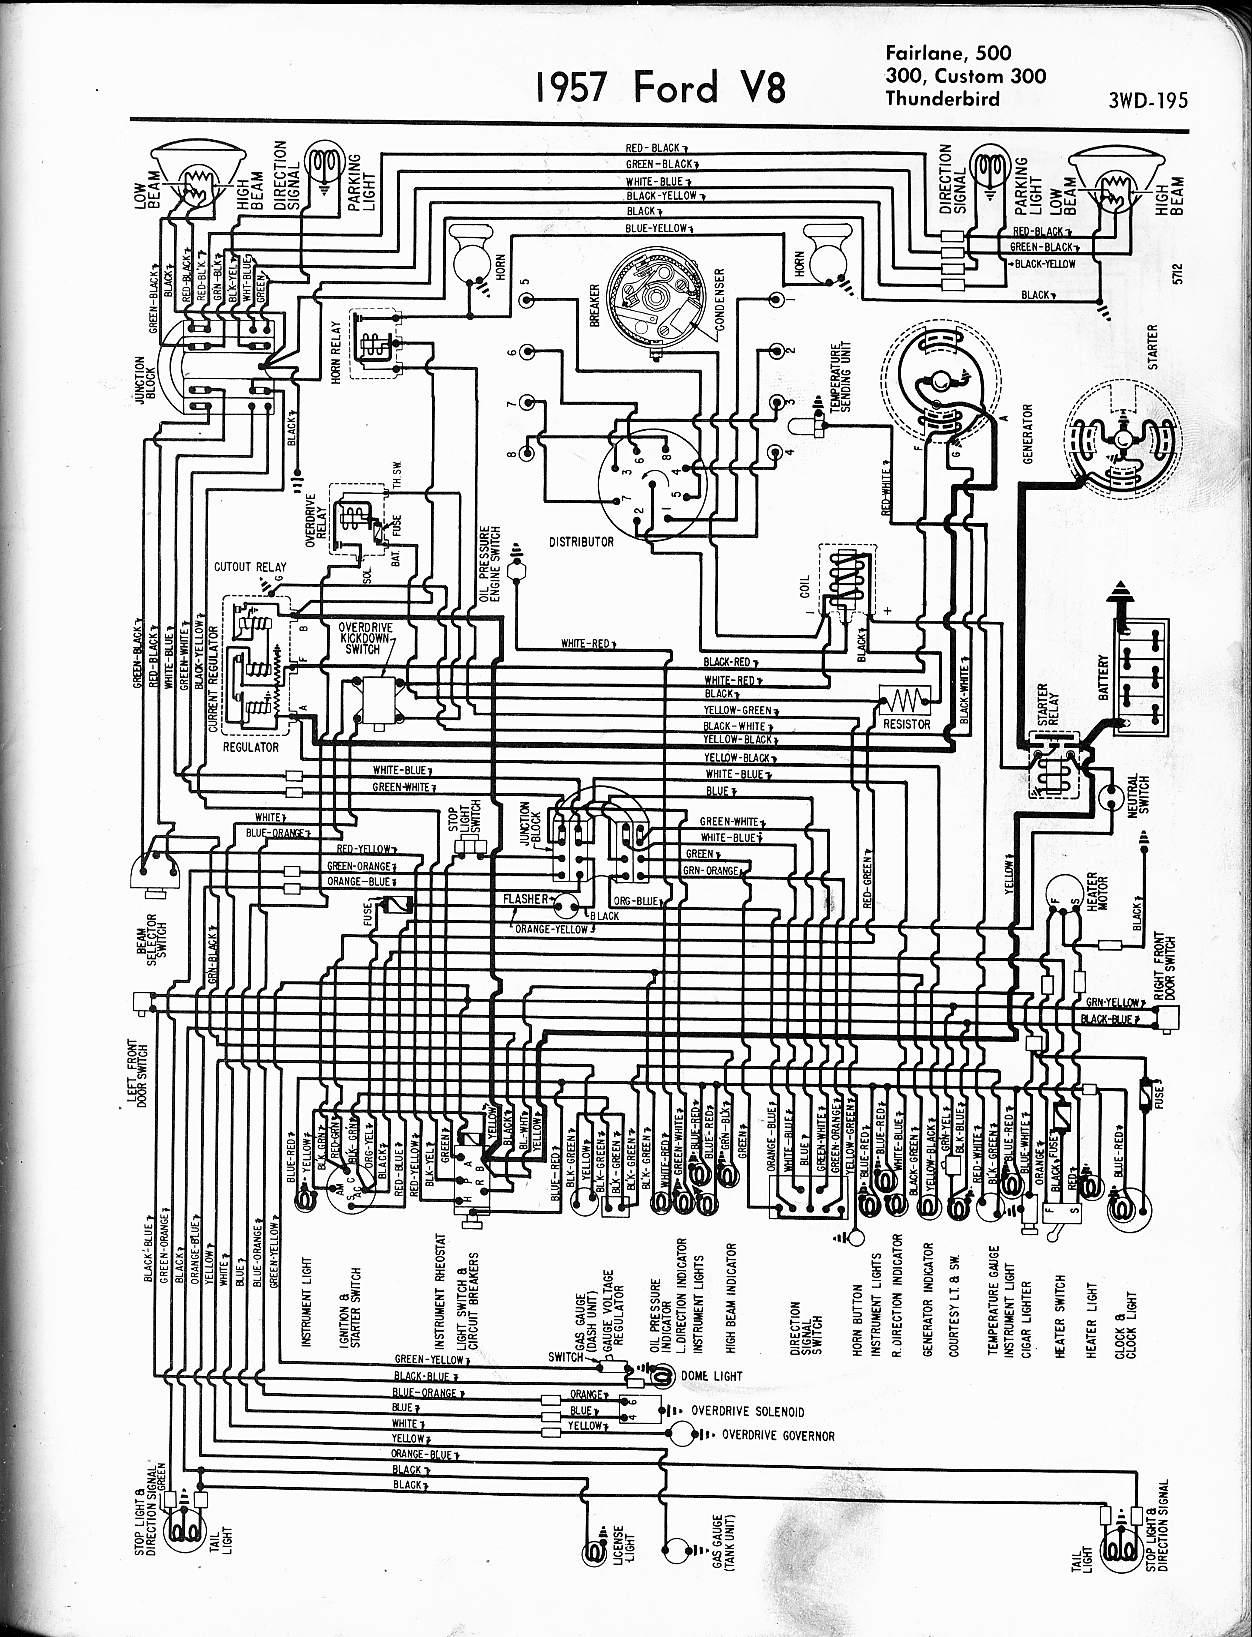 MWire5765 195 runtz voltage reducer i change my 55 t birt to a 12 volt system 57 Chevy Wiring Diagram at panicattacktreatment.co